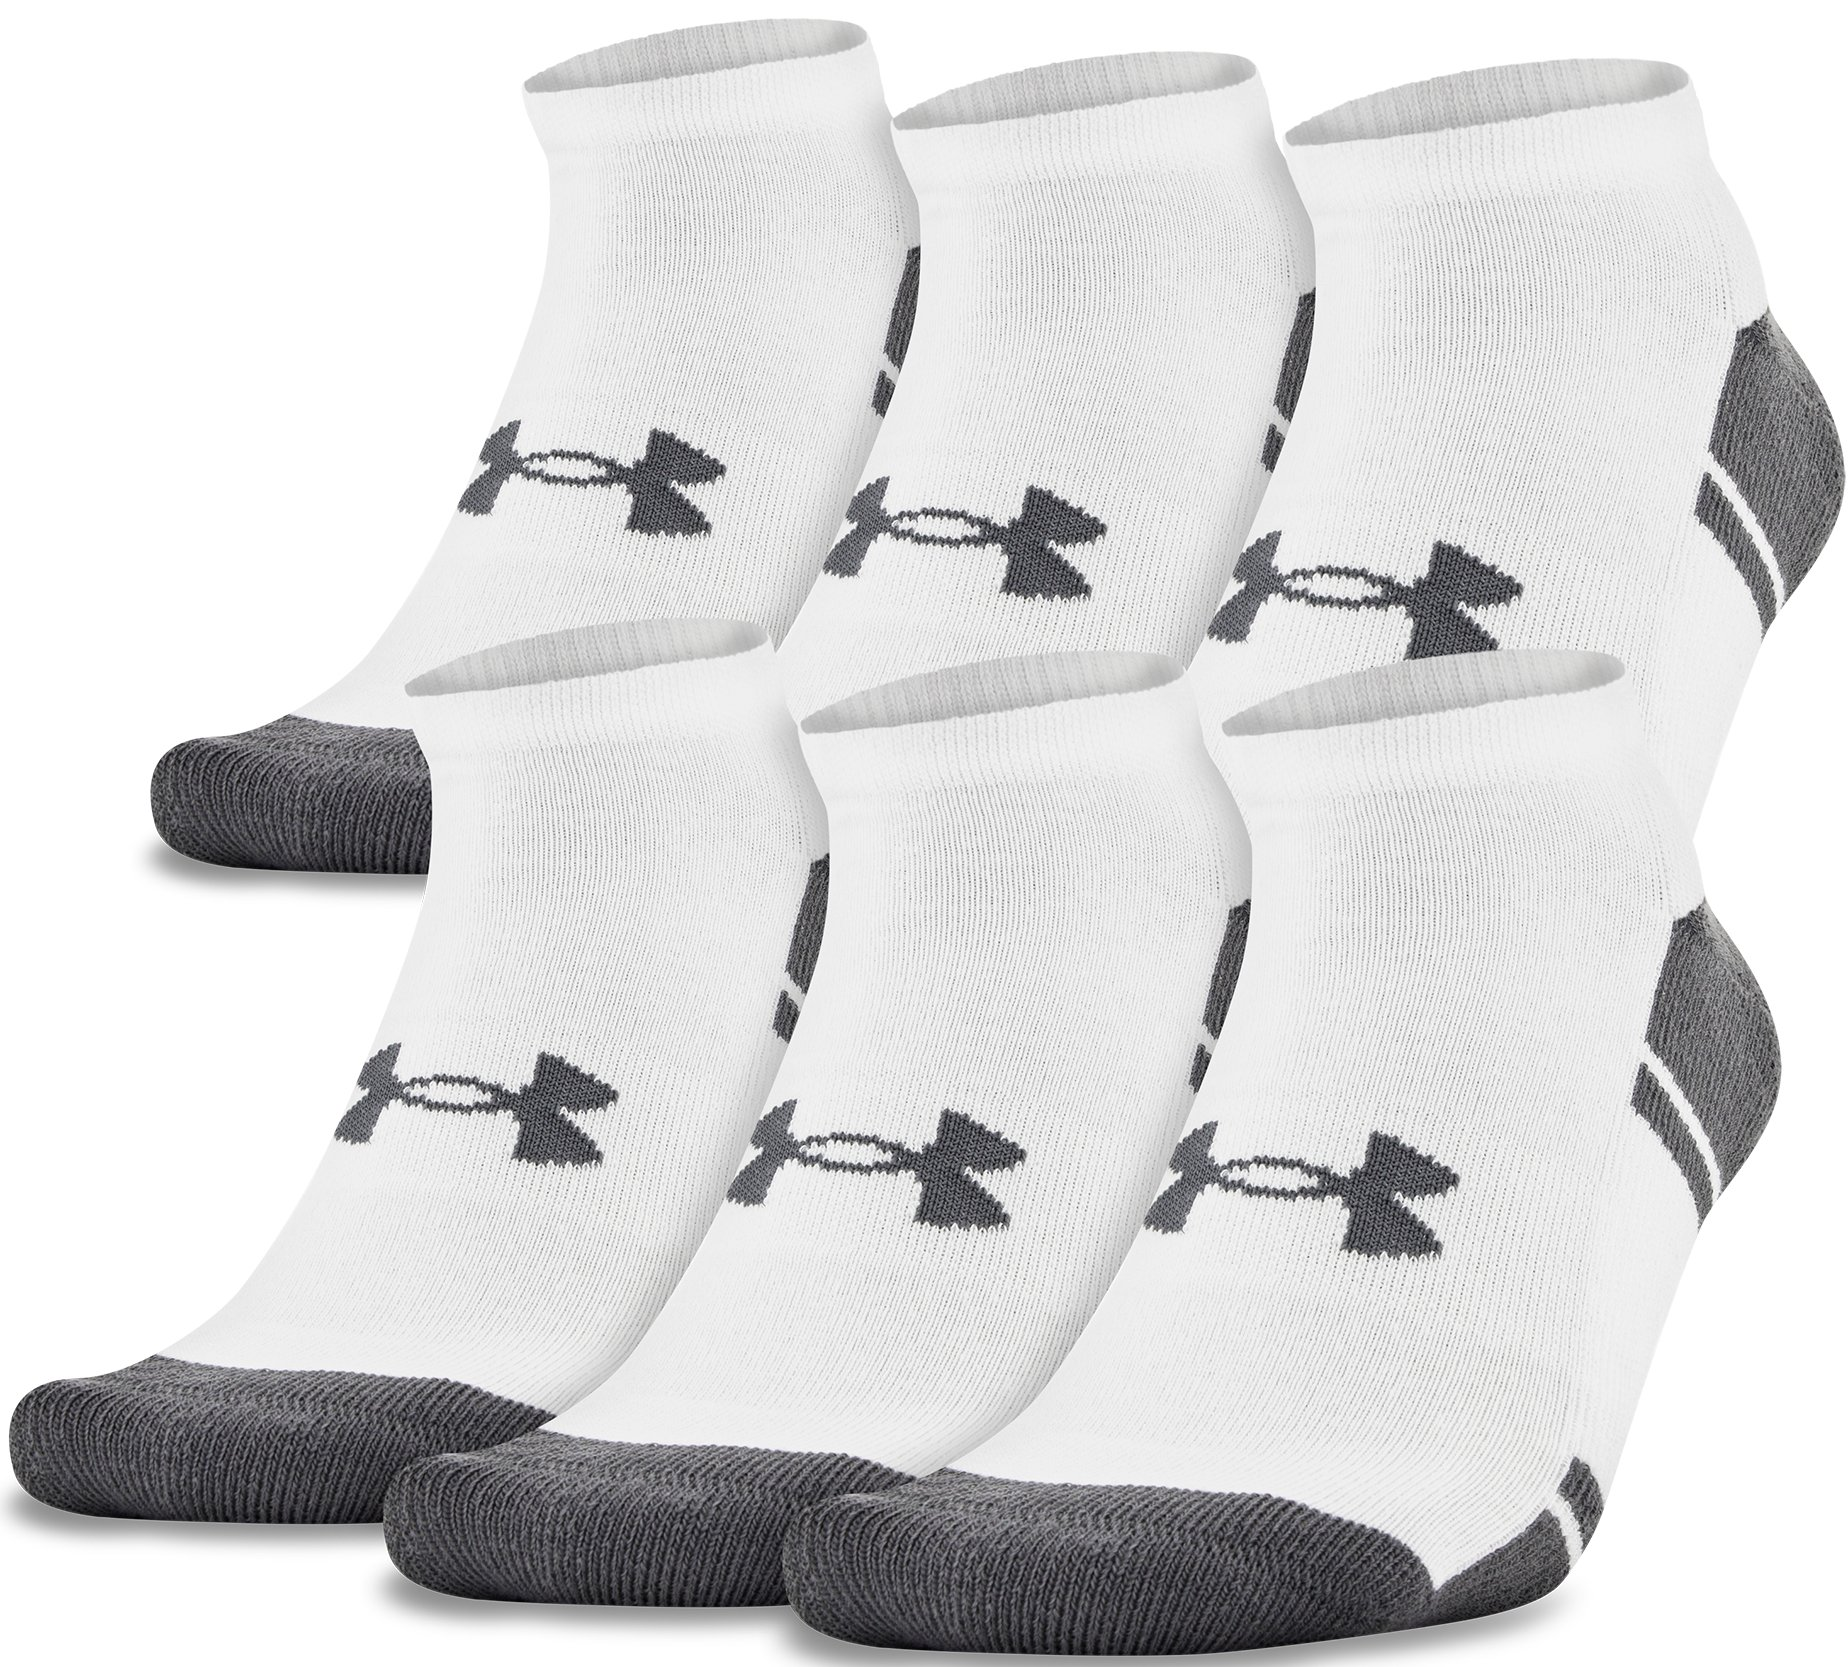 white over the calf socks UA Resistor III No Show Socks – 6-Pack They come in black and <strong>white</strong>.